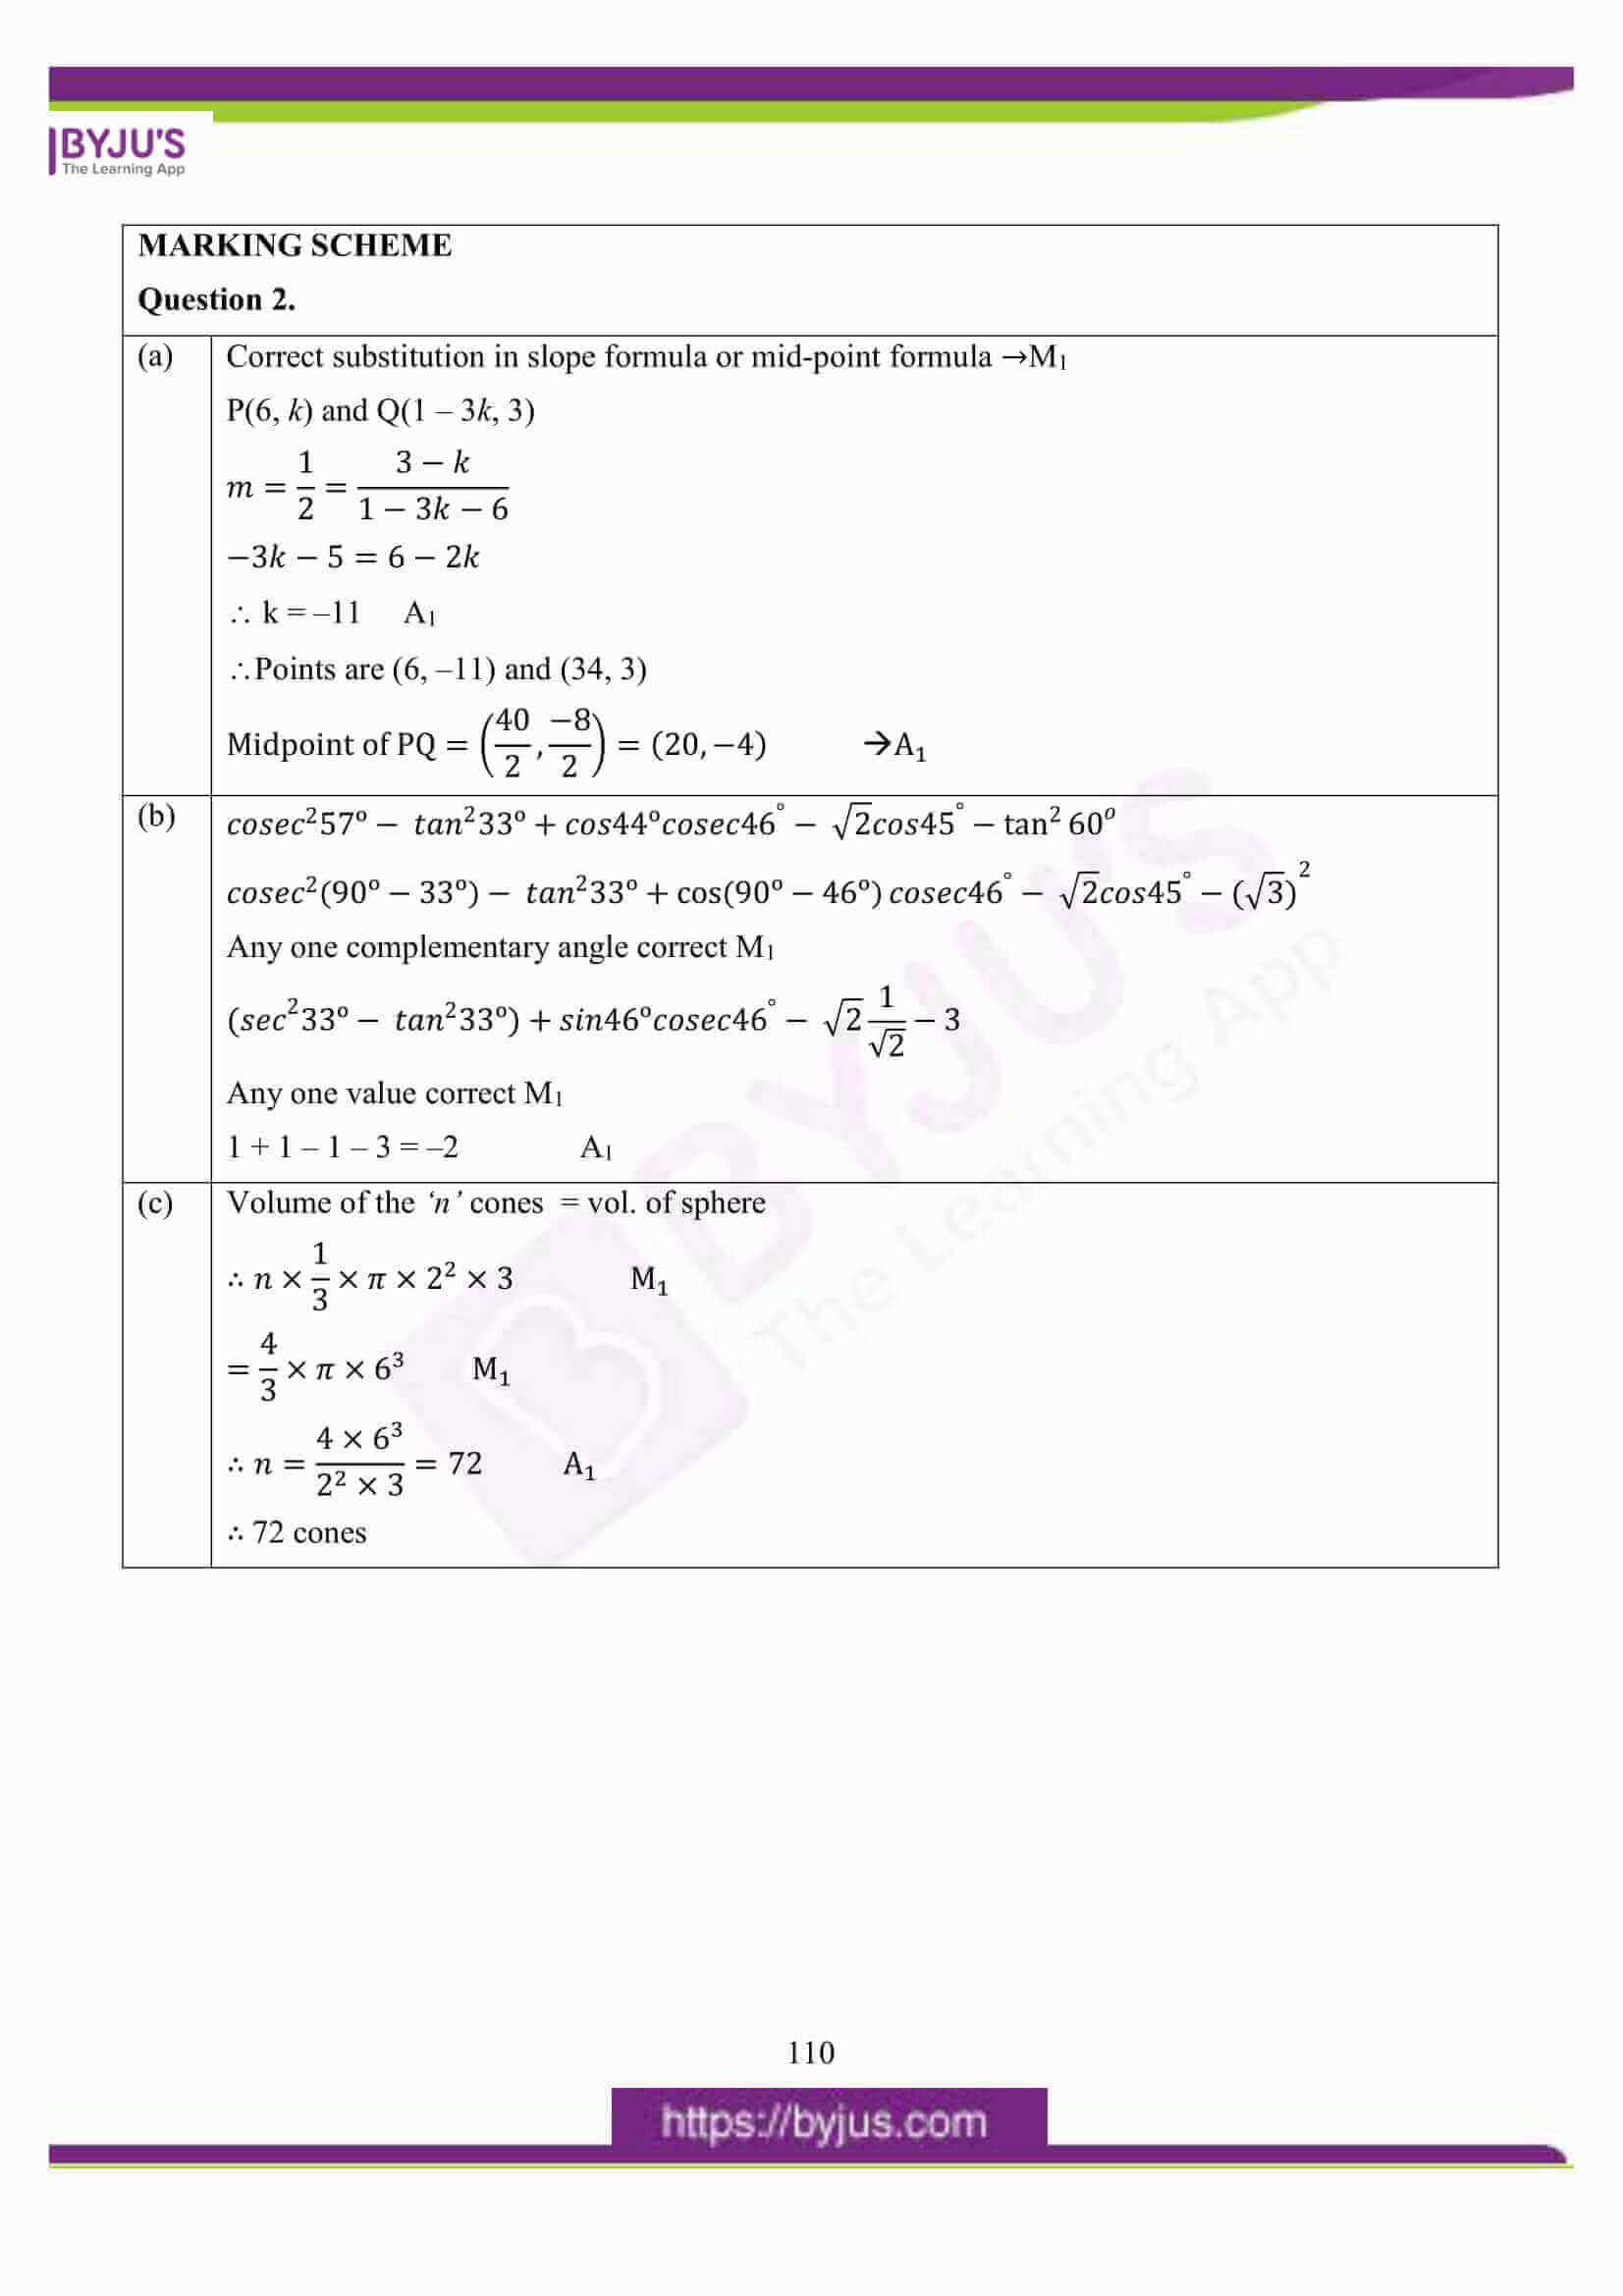 icse class 10 maths question paper solution 2016 04